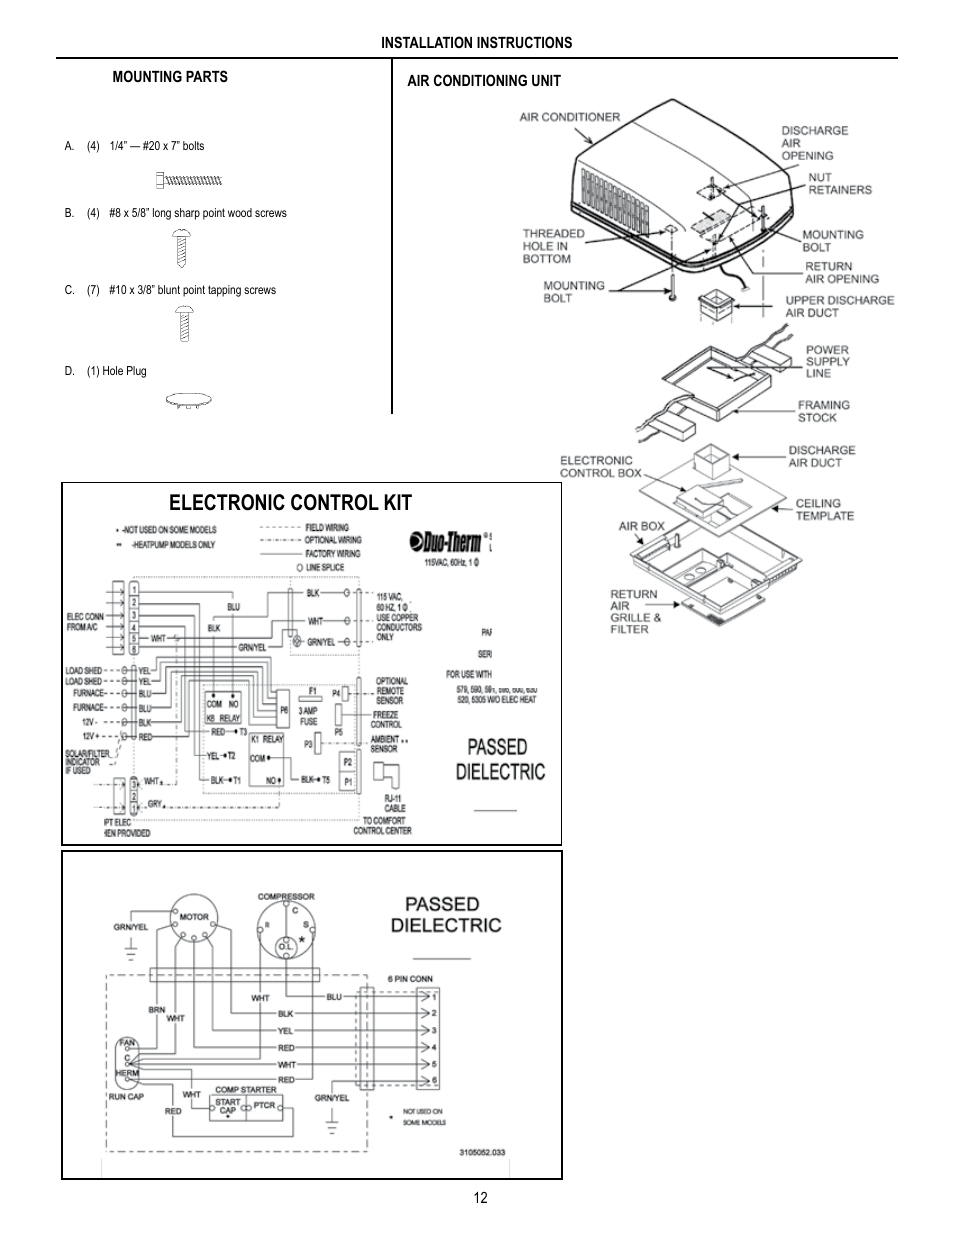 dometic brisk air 2 installation manual